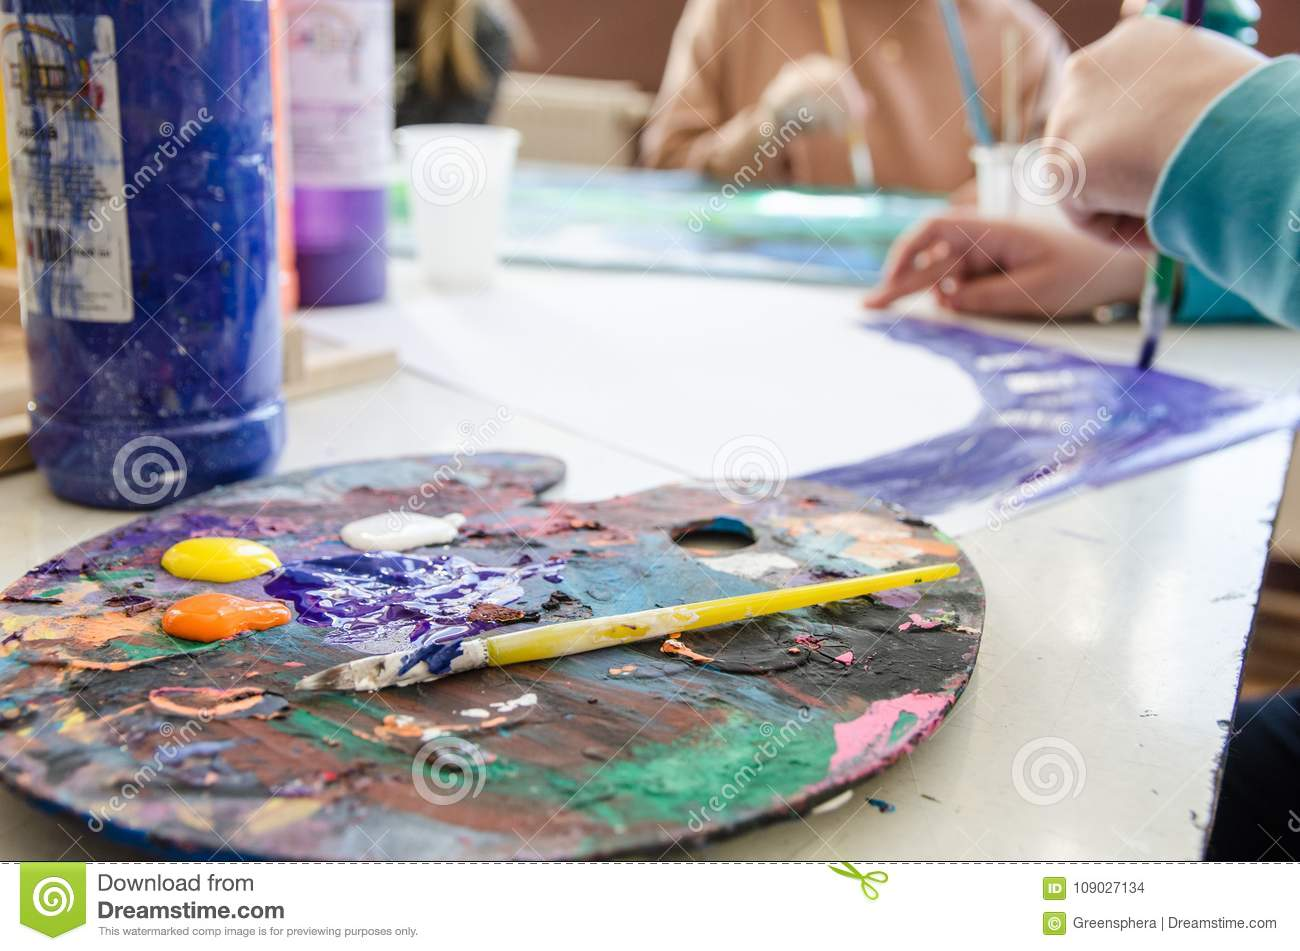 Color palette and a brush in foreground with students painting in class out-of-focus in the background